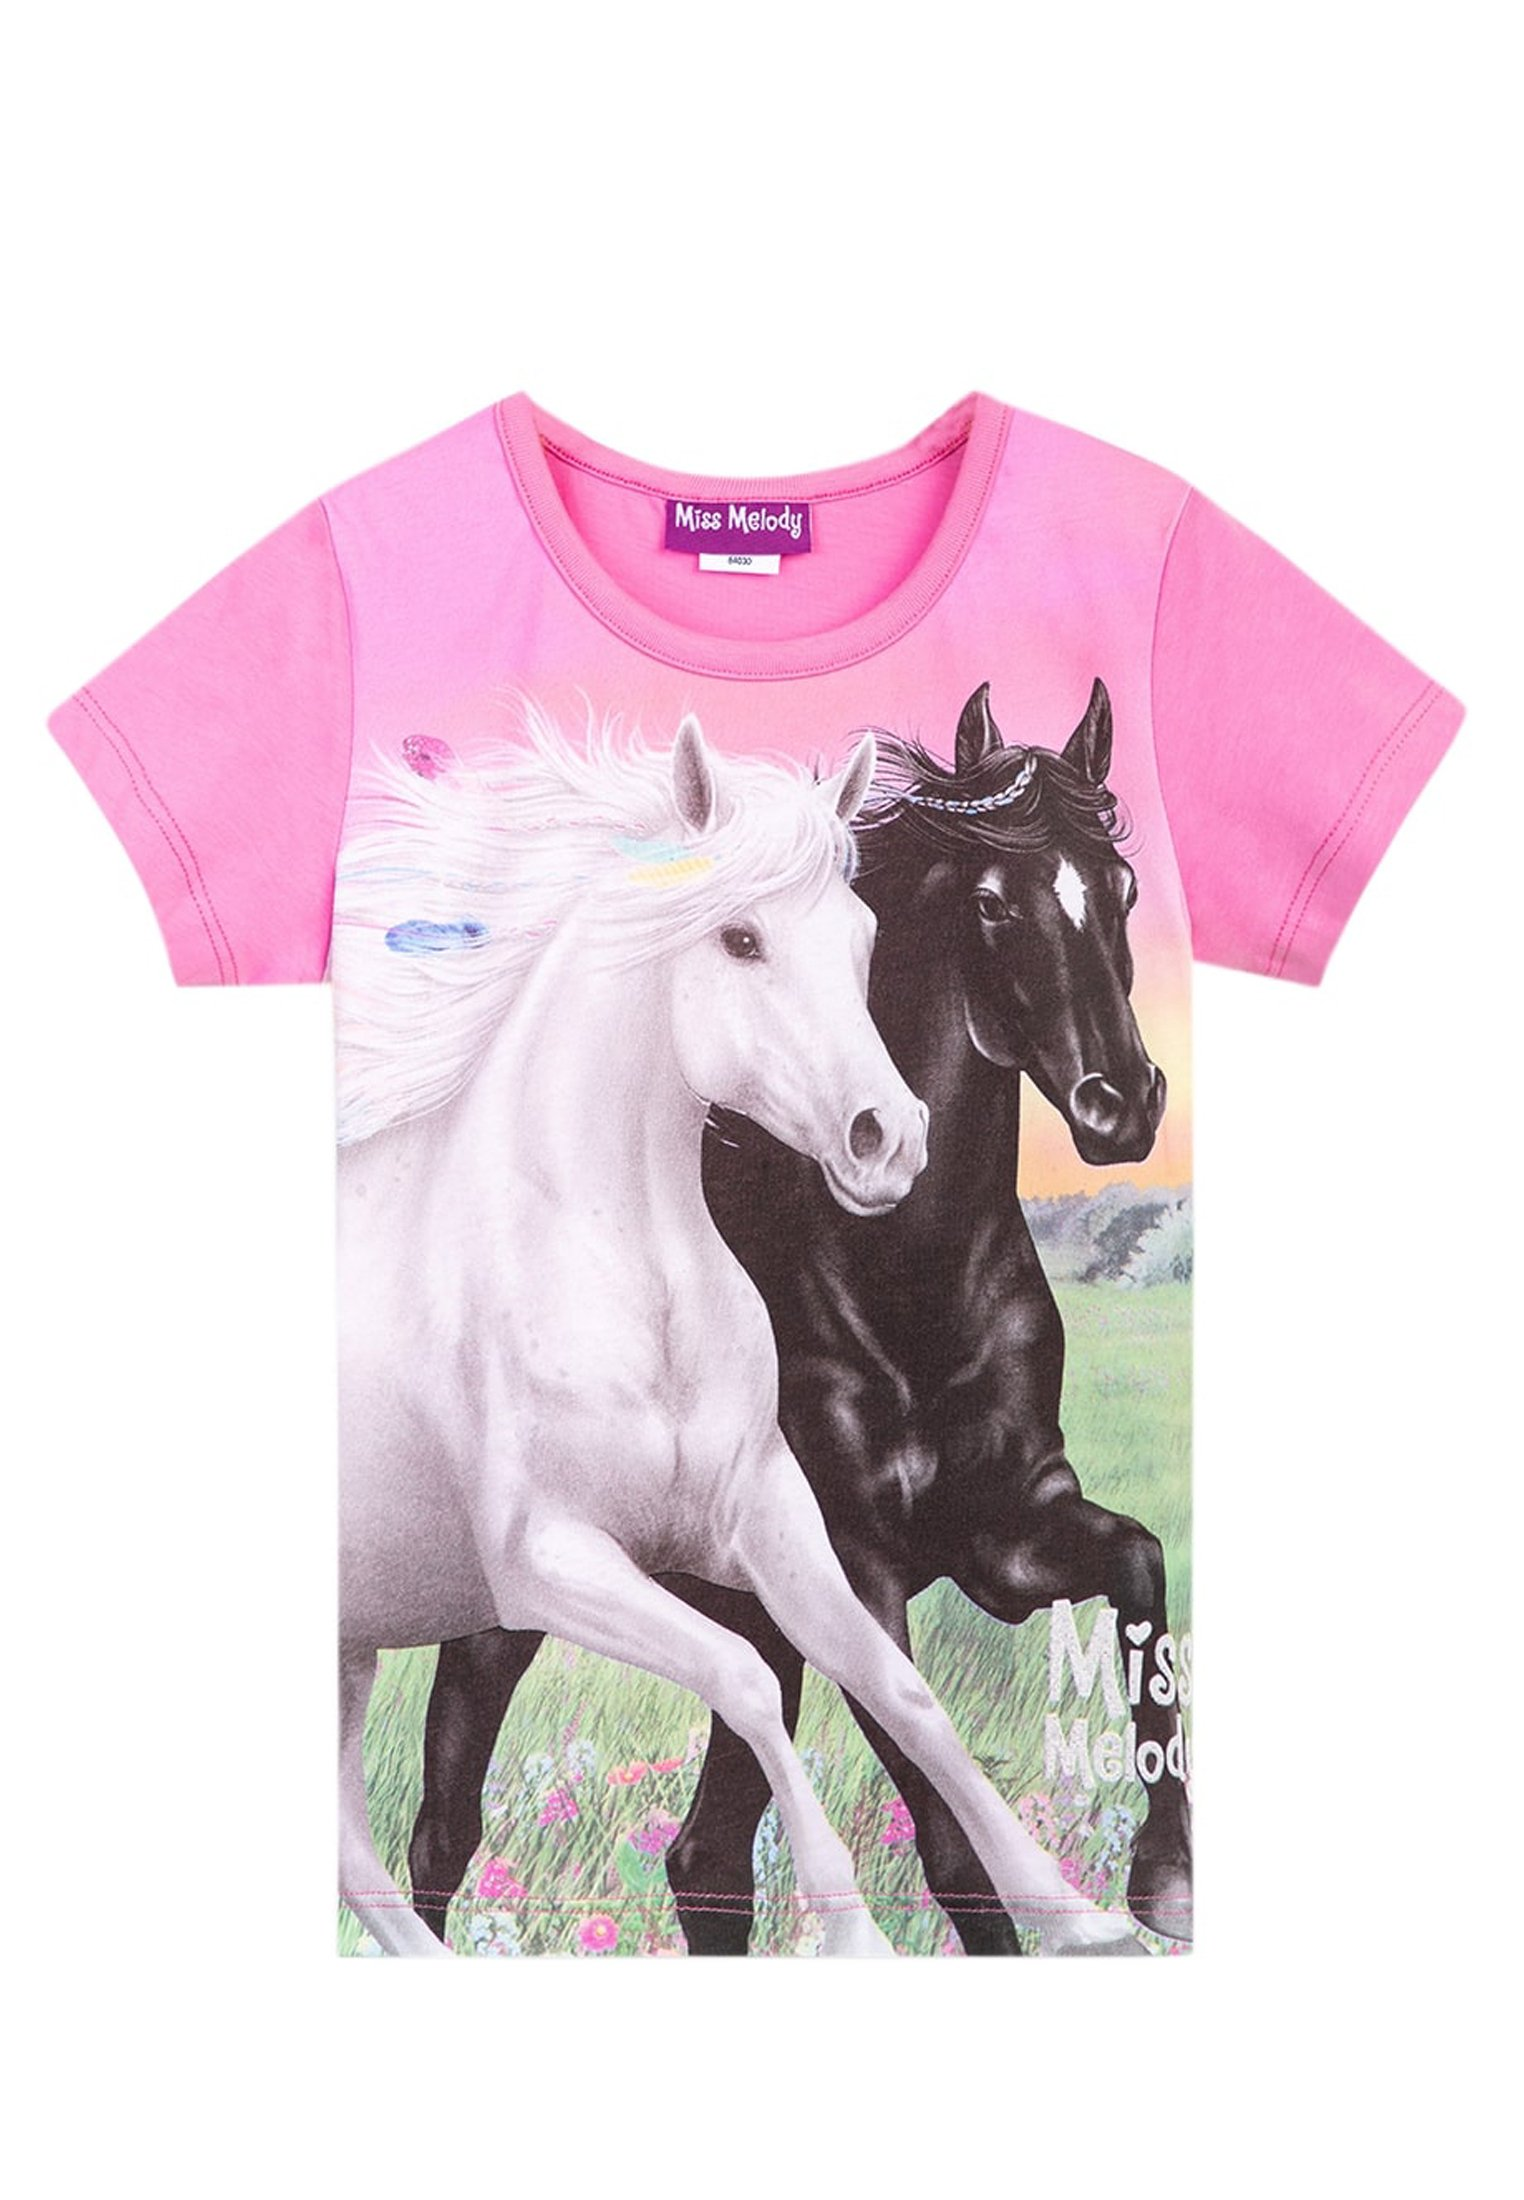 Bambini MISS MELODY - T-shirt con stampa